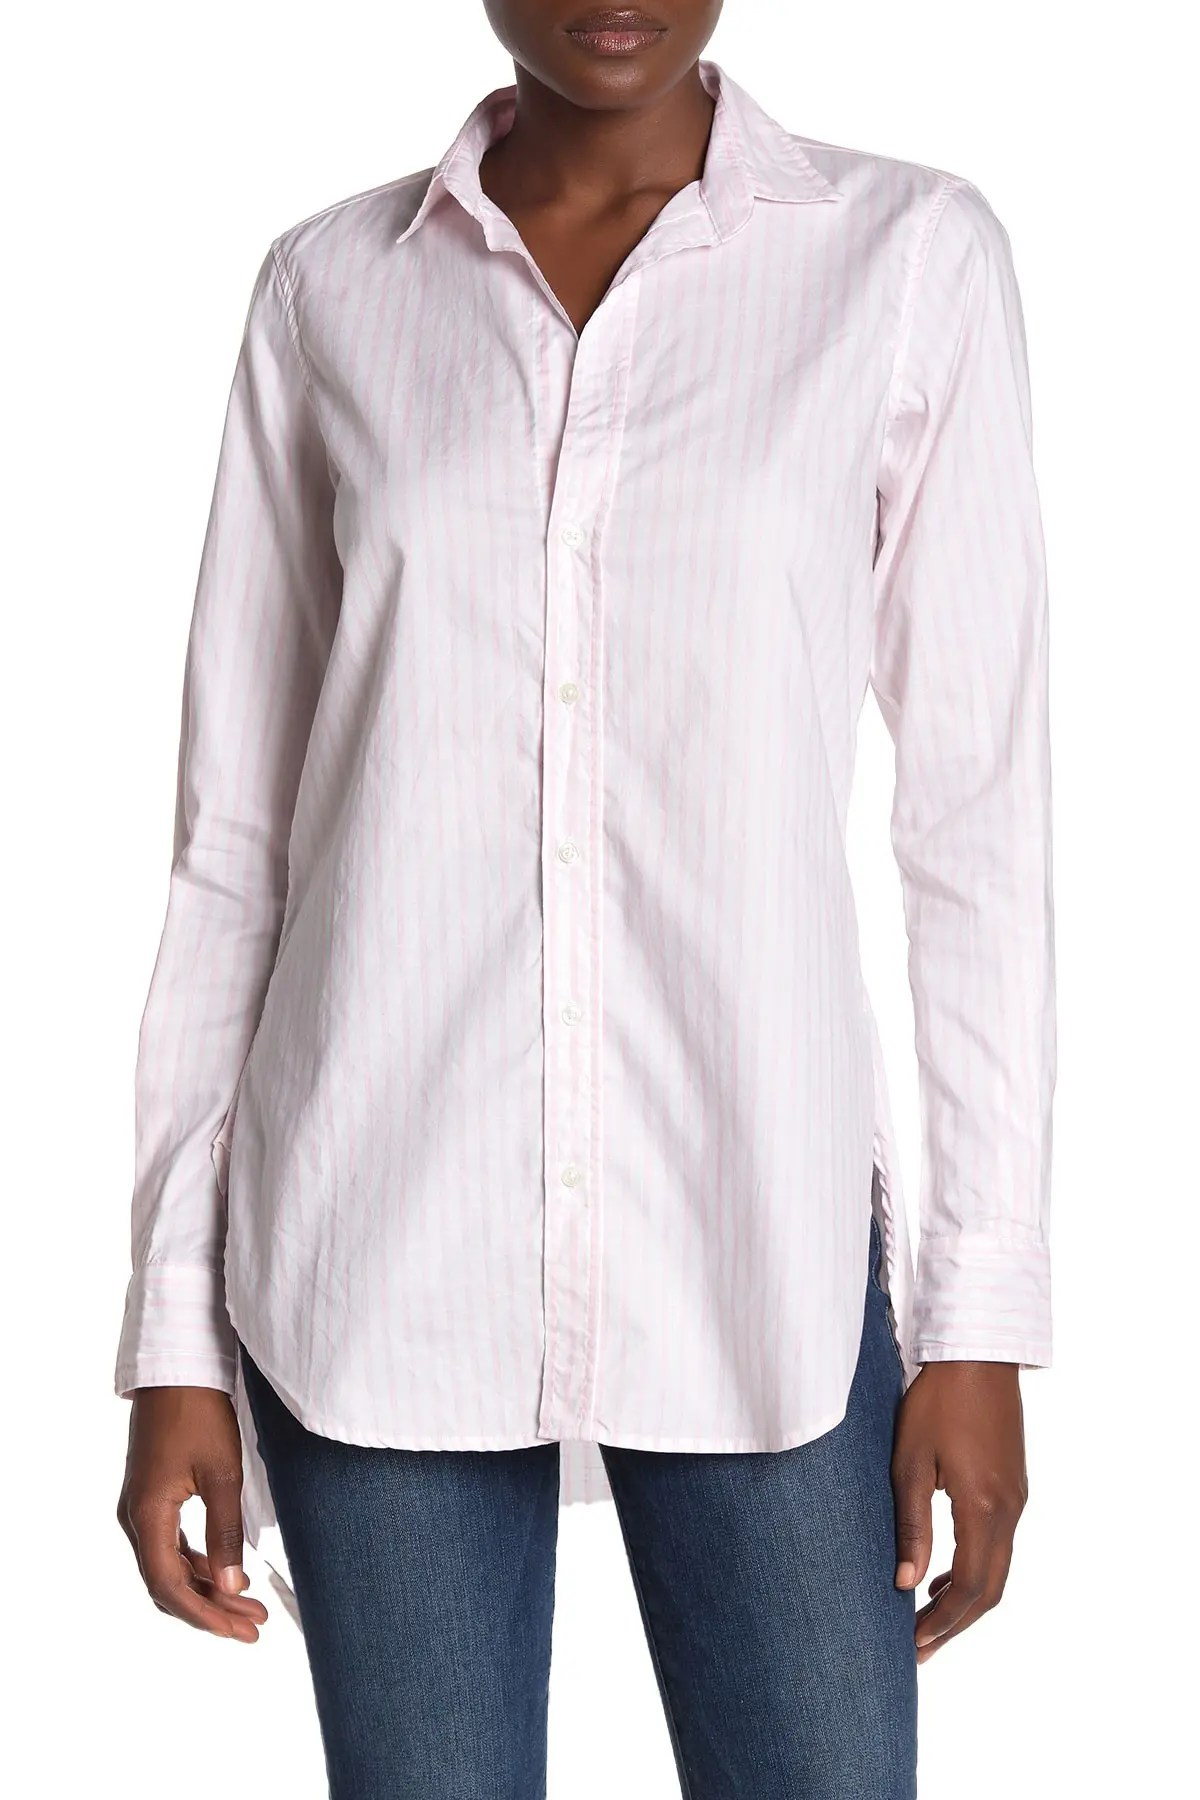 frank eileen grayson relaxed fit long sleeve button front shirt nordstrom rack